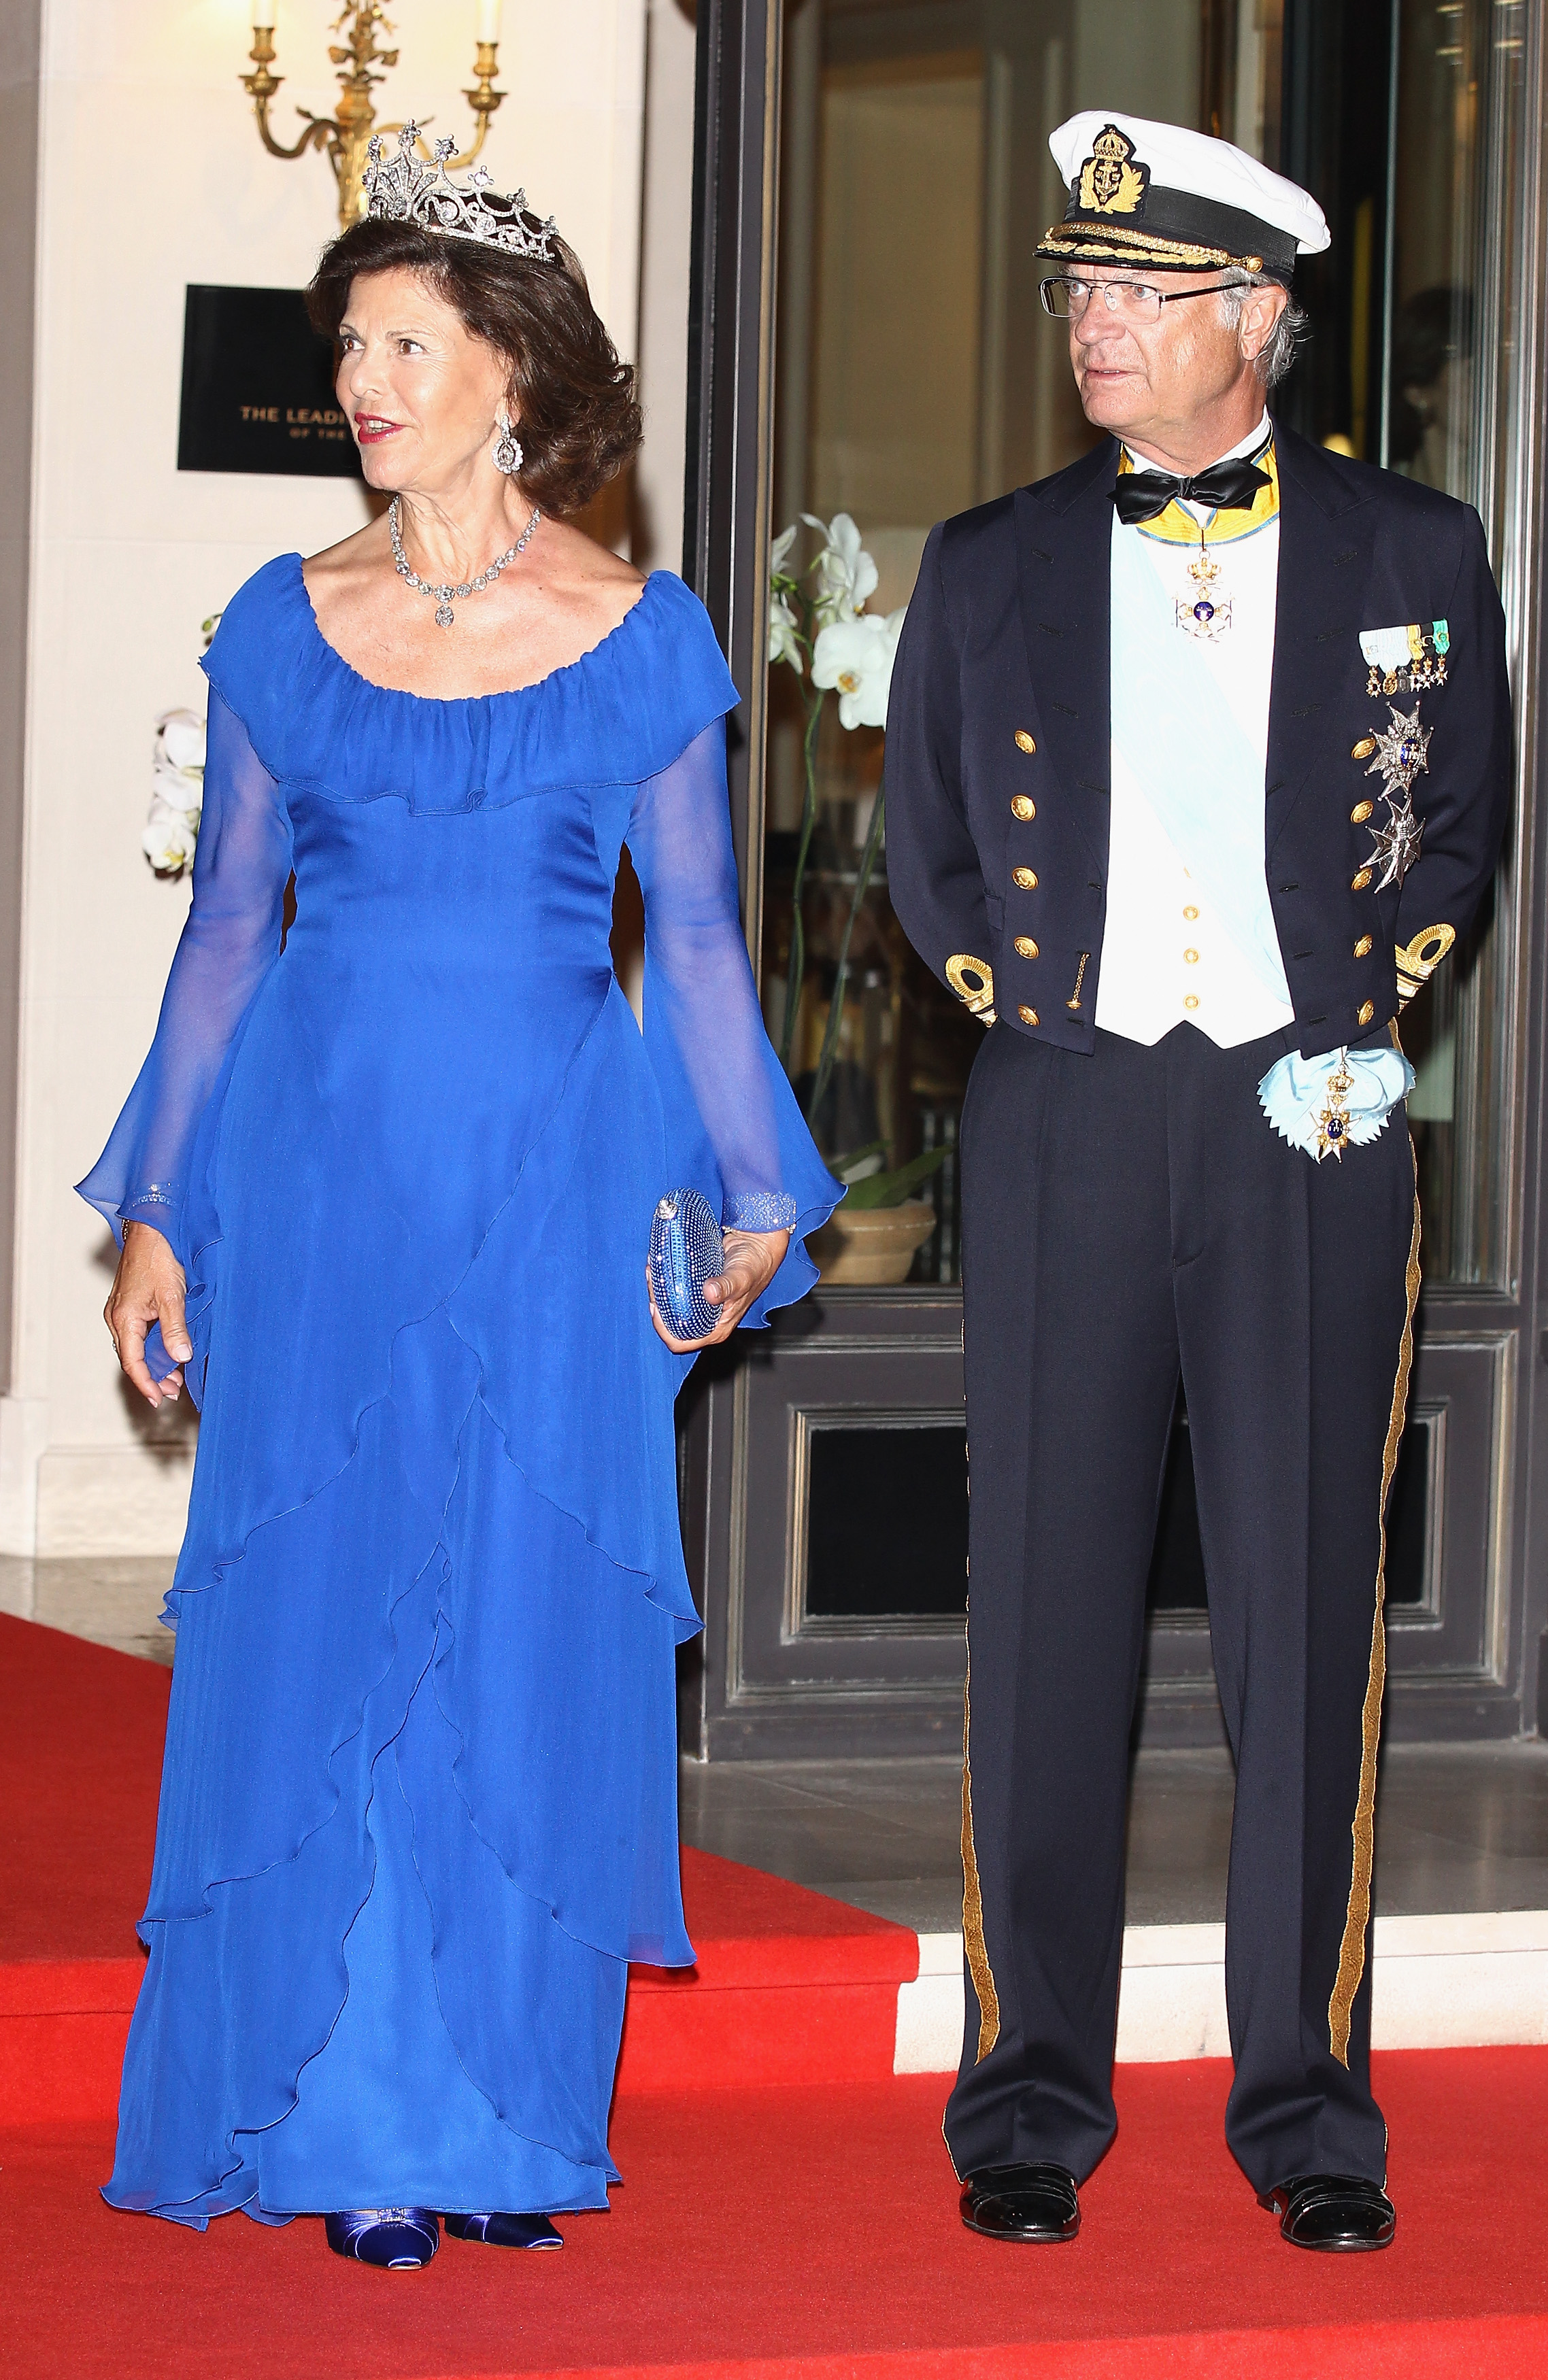 HM Carl XVI Gustaf, king of Sweden, and Queen Silvia of Sweden attended a dinner at Opera terraces after the religious wedding ceremony of Prince Albert II of Monaco and Princess Charlene of Monaco.